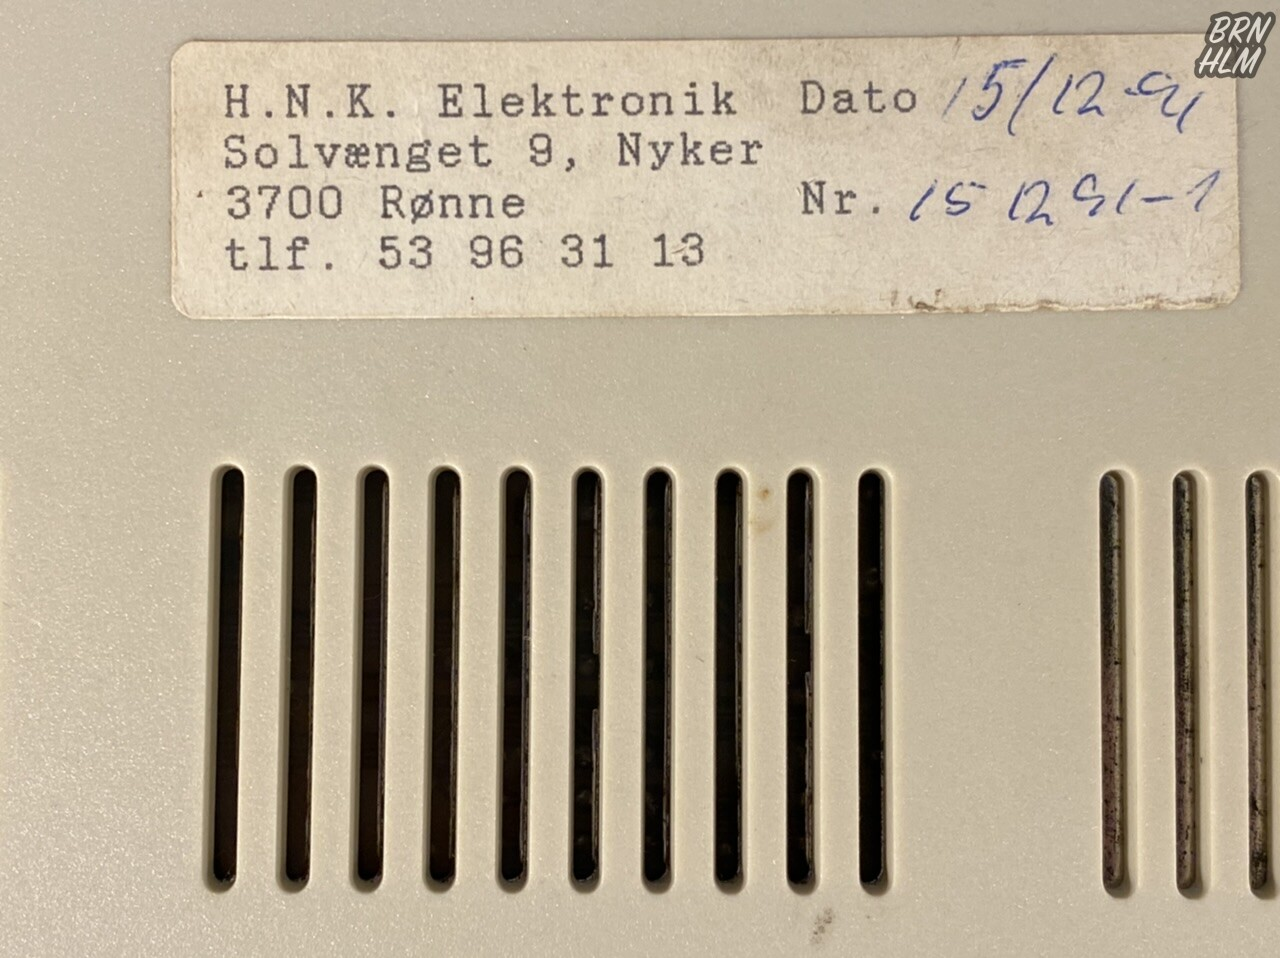 H.N.K. Elektronik i Nyker - 15. december 1991